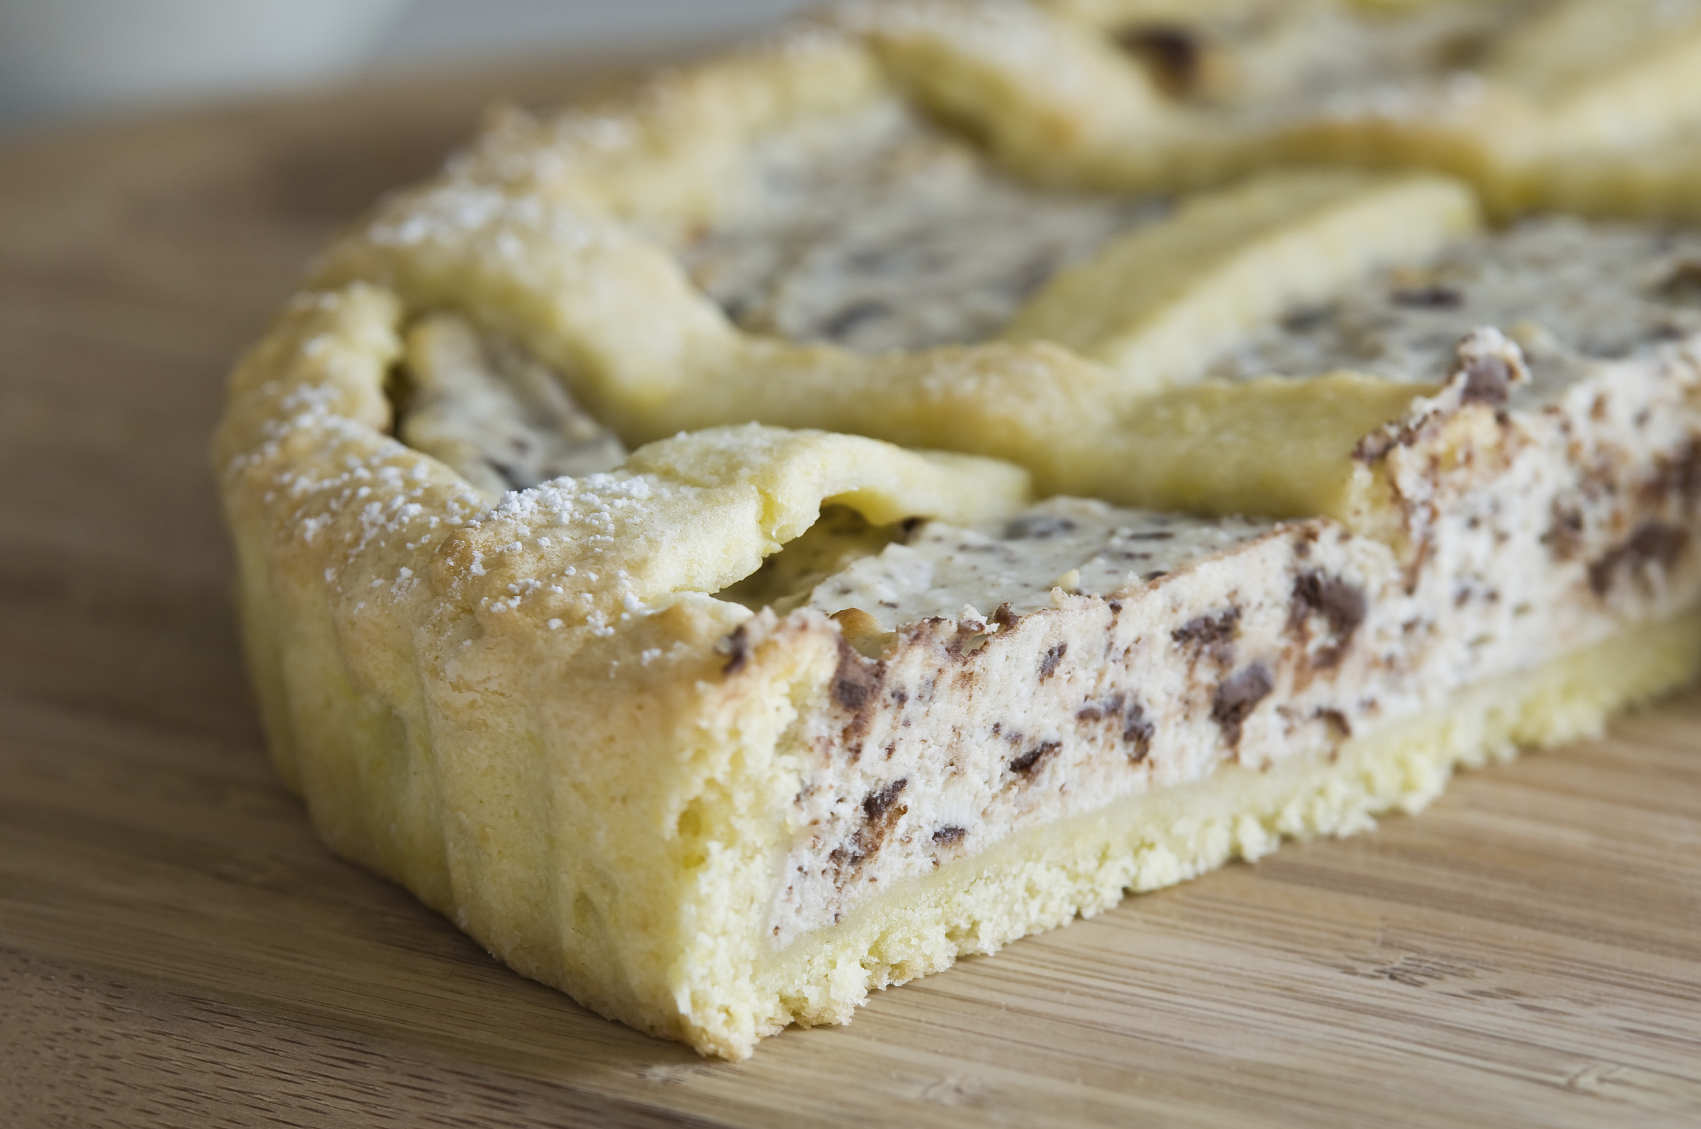 ... in English: Recipe: Sweet ricotta pie with hazelnuts and chocolate